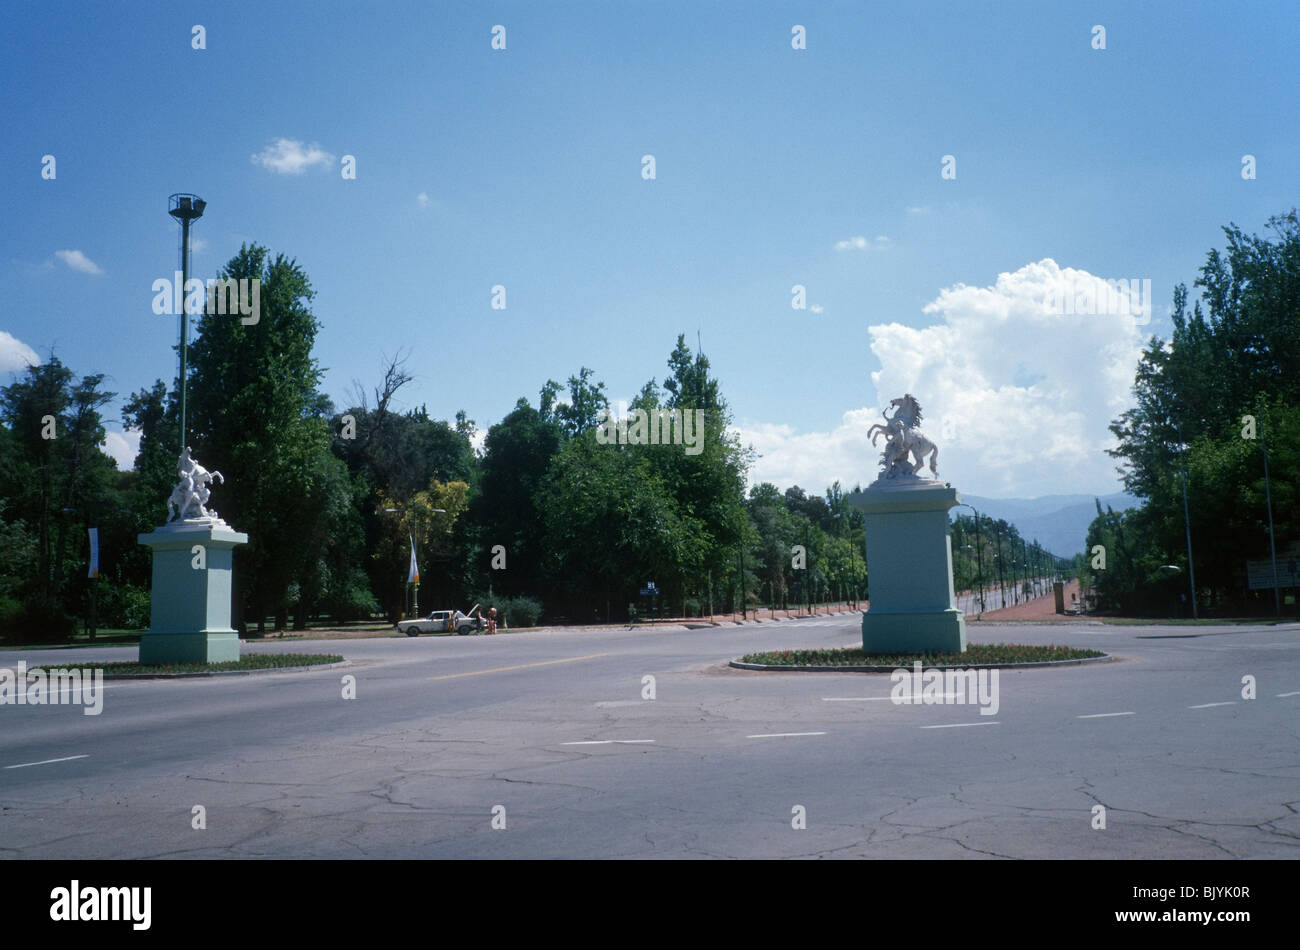 Mendoza, Argentina. The great roundabout in Avenida del Libertador, inside the city park (Parque General San Martín) - Stock Image